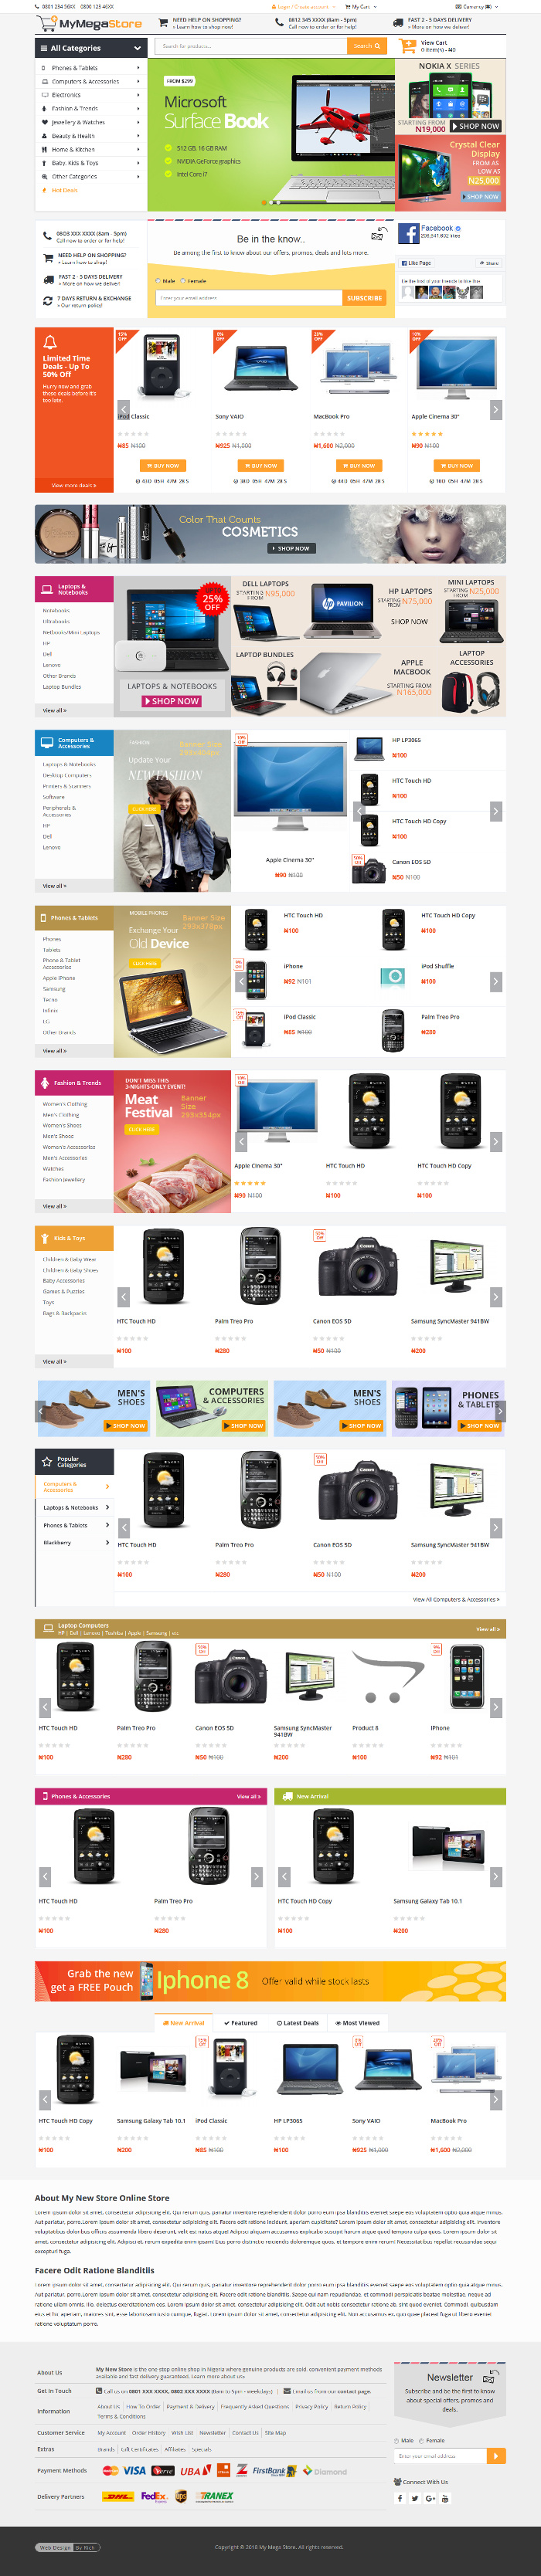 MyMegaStore - Pre-Designed Multi-Purpose eCommerce Website